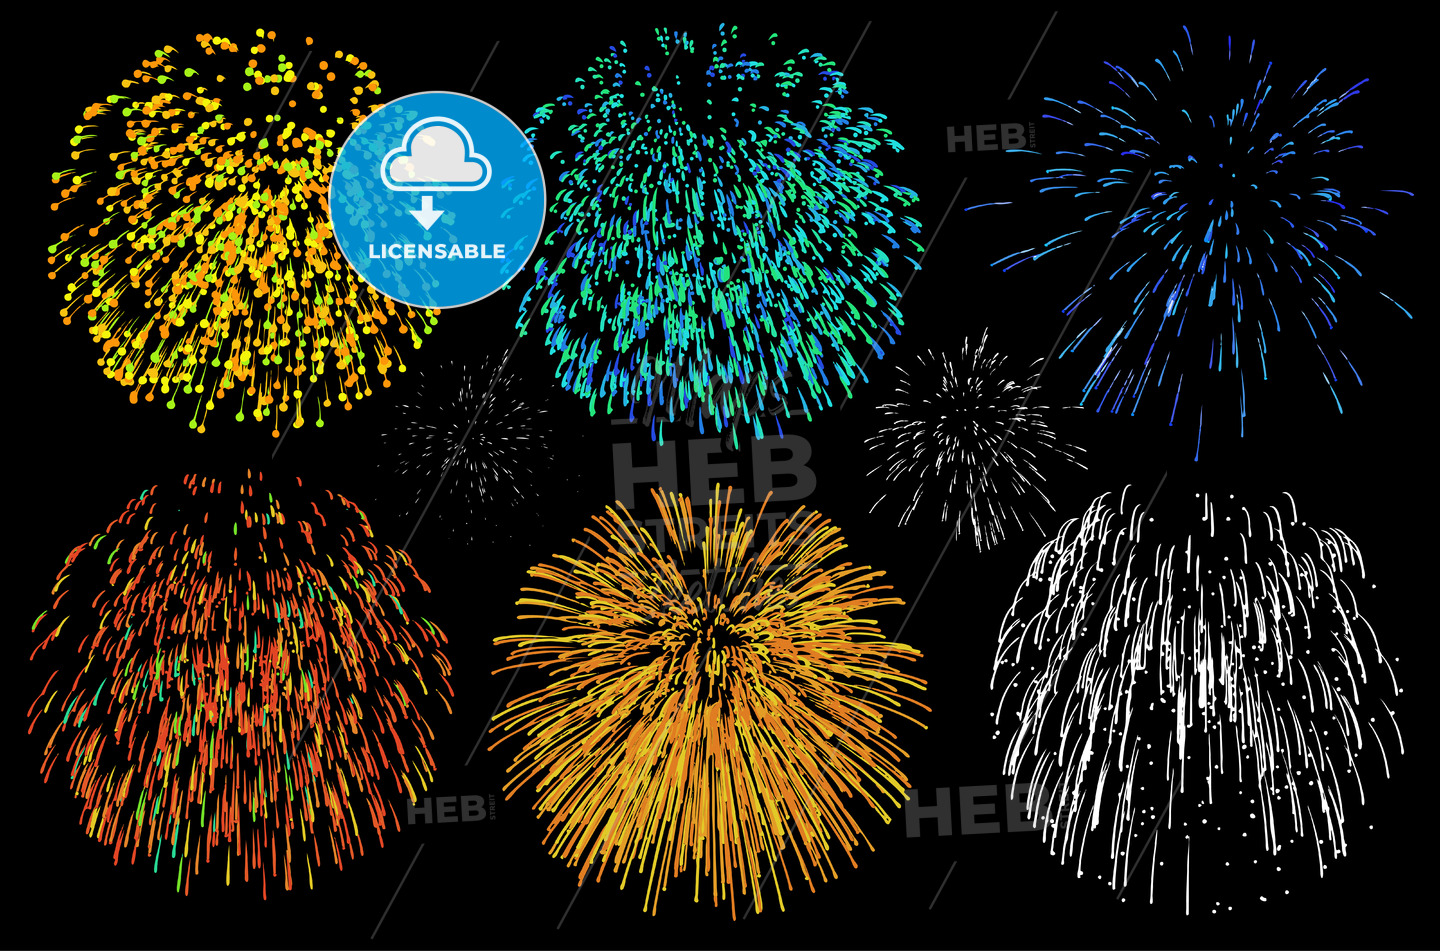 Stickman fireworks on black - HEBSTREIT's Sketches